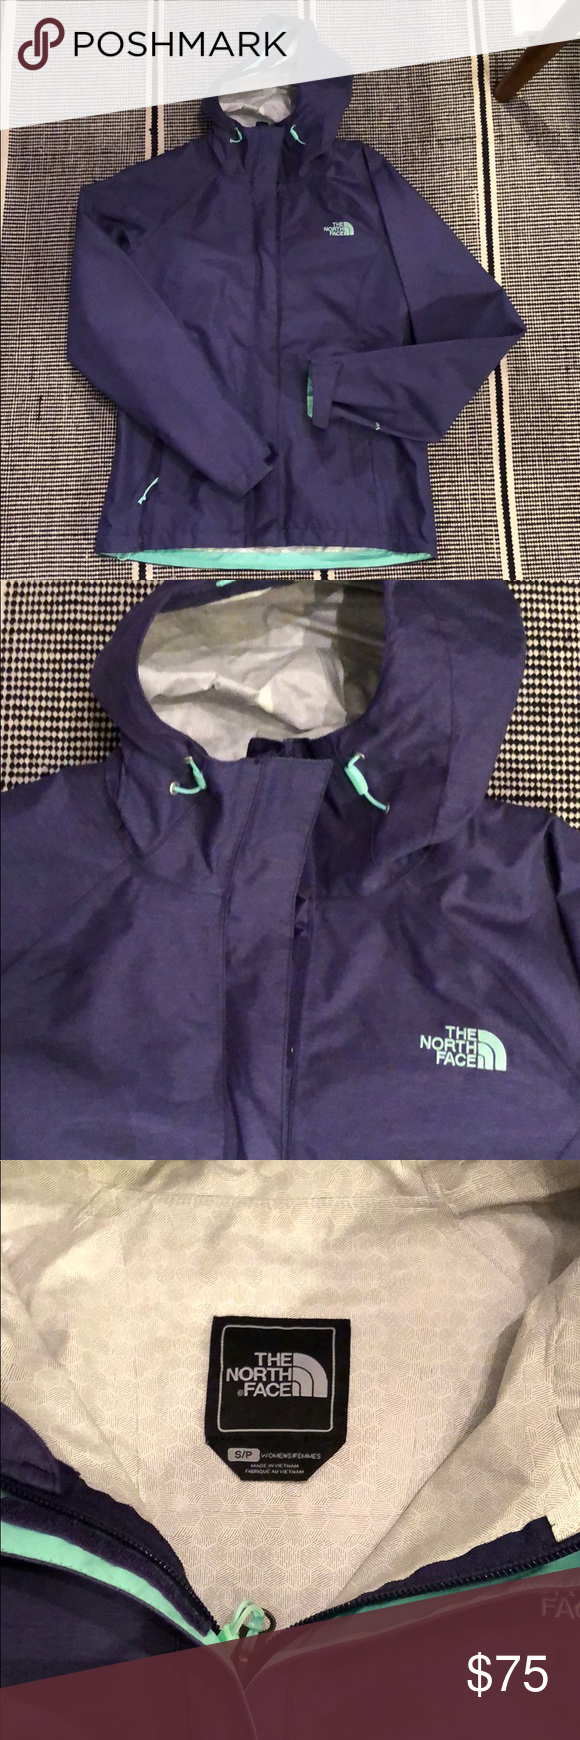 North Face Rain Jacket Purple And Mint Rain Jacket From The North Face Only Worn Once Like New Condition Perfec North Face Rain Jacket The North Face Jackets [ 1740 x 580 Pixel ]